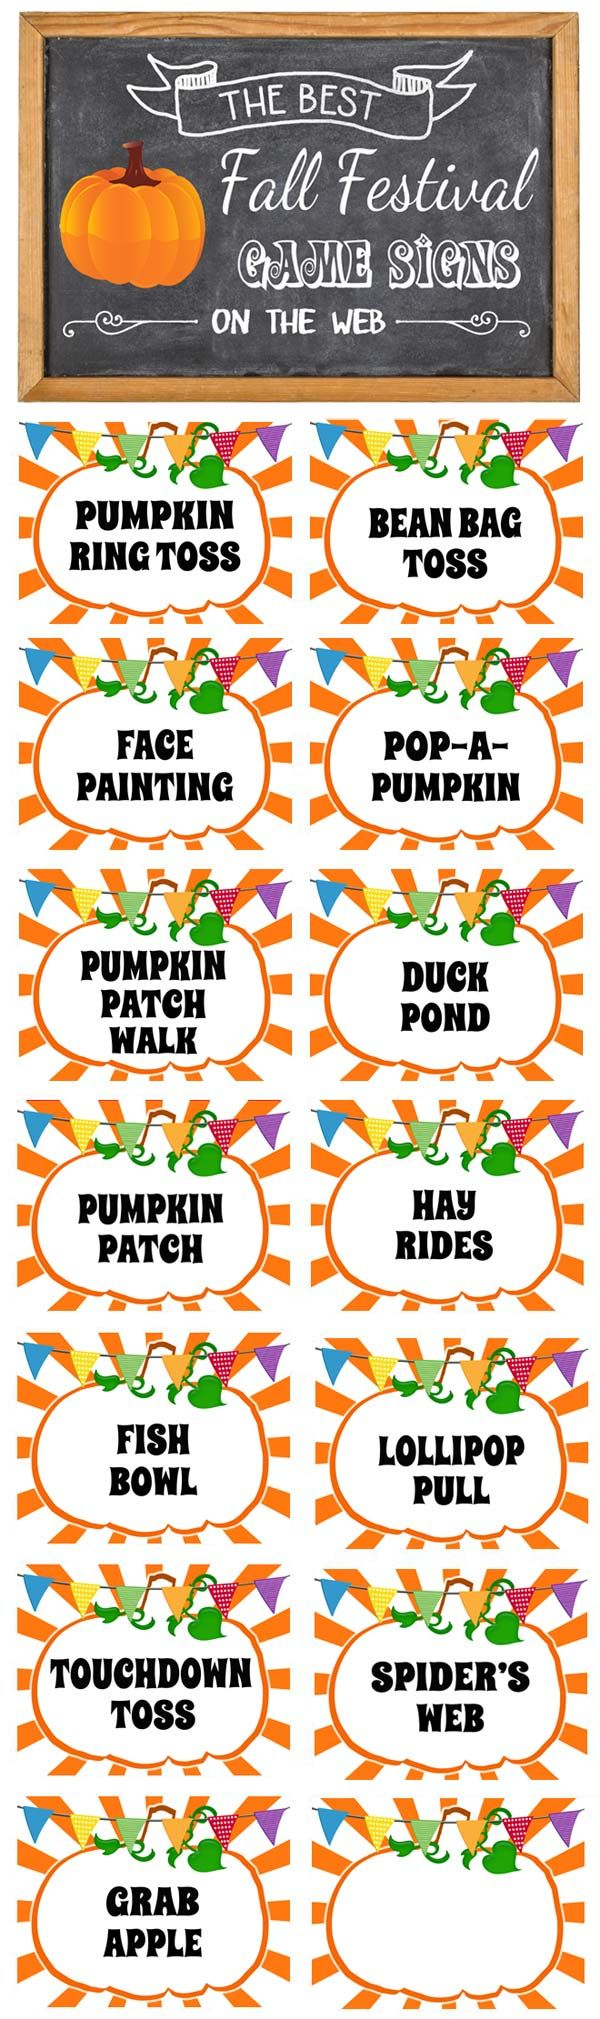 Best 20+ Halloween carnival games ideas on Pinterest | Halloween ...